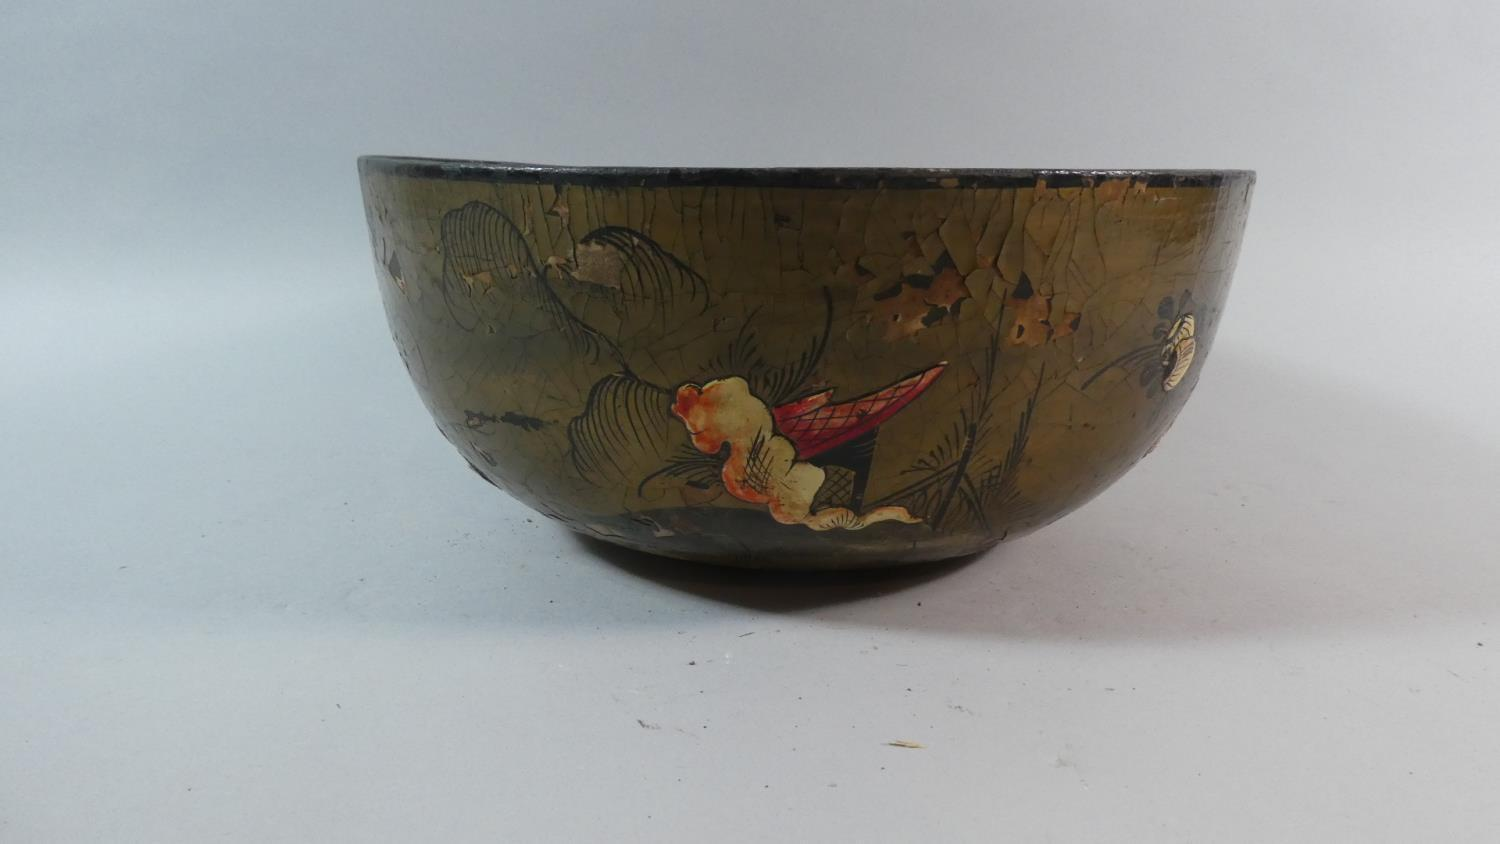 Lot 46 - An Early 19th Century Regency Chinoiserie Decorated Lacquered Papier Mache Bowl. 30cm Diameter